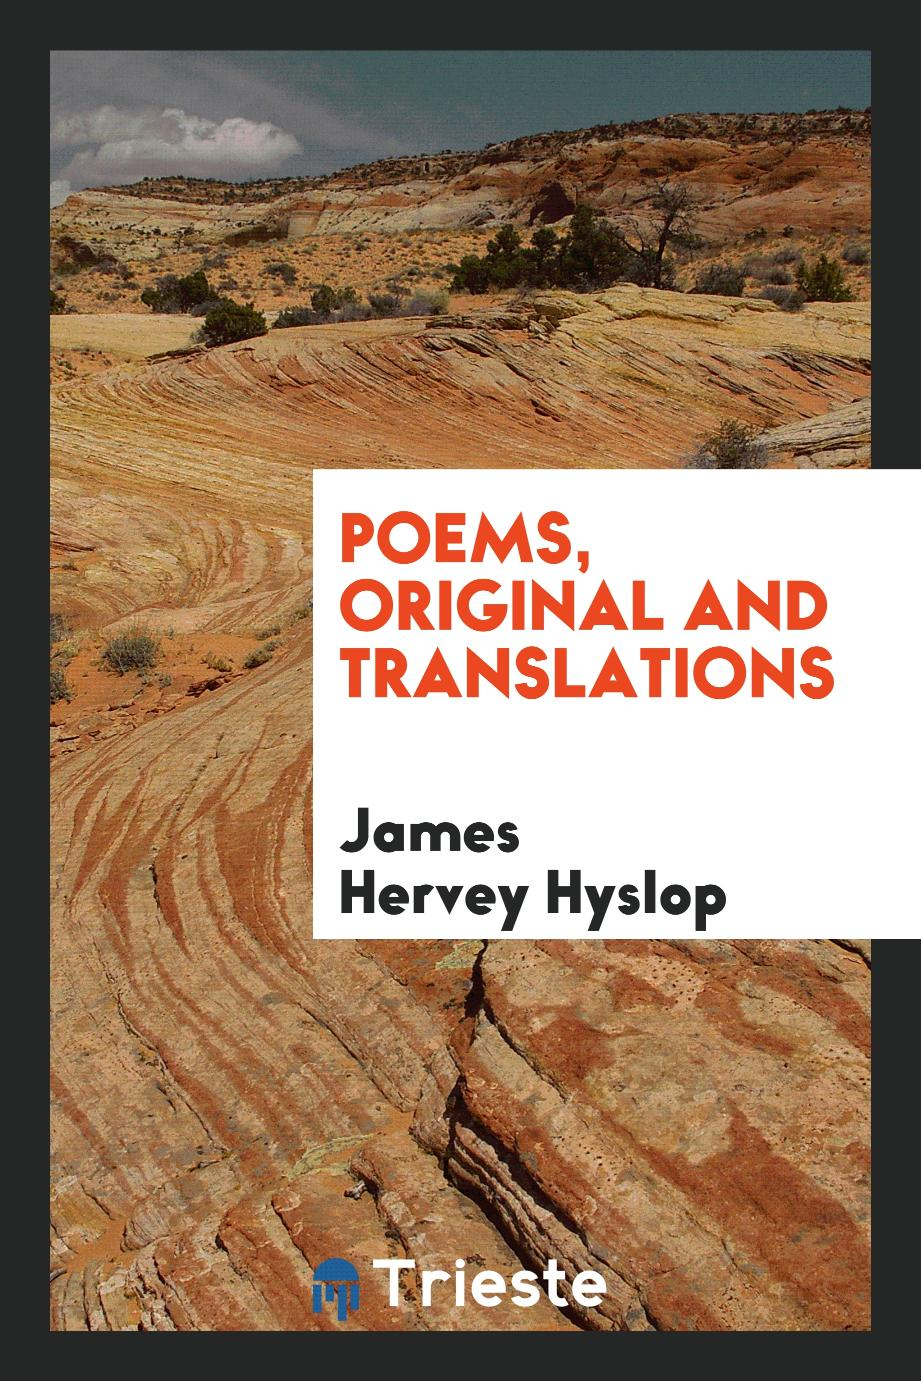 Poems, original and translations